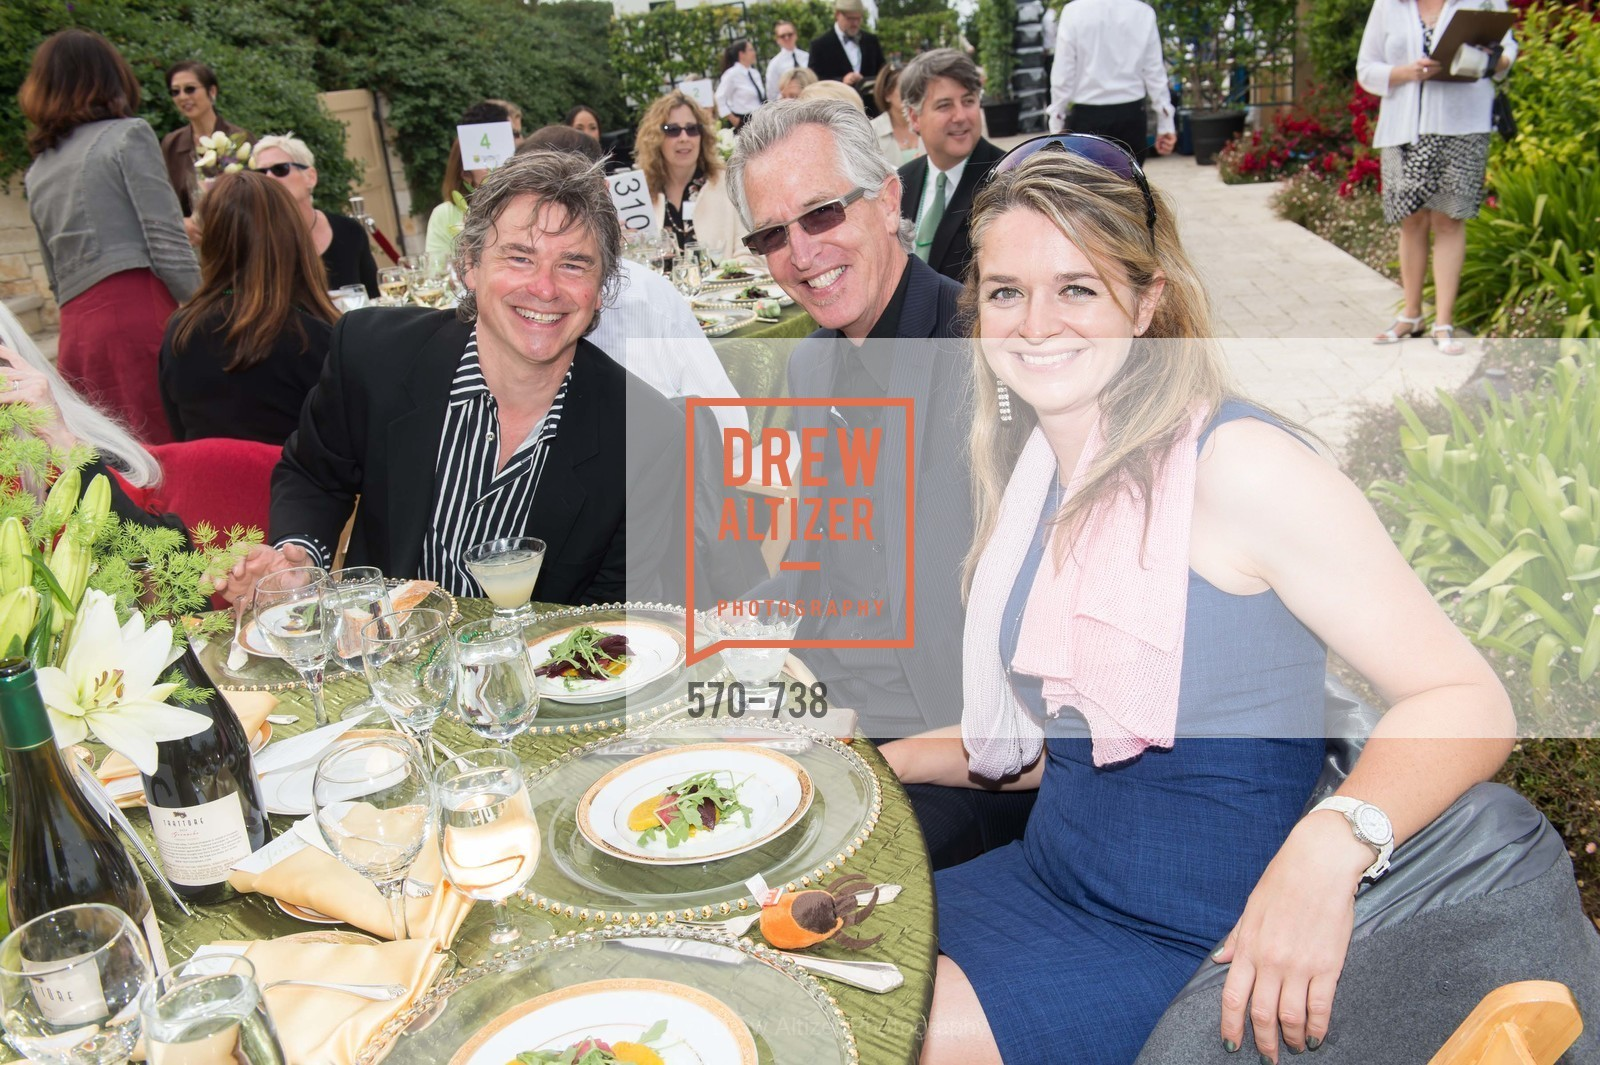 Ronny Crawford, Patrick Tinney, Sinead Devine, LymeAid 2015, US, May 18th, 2015,Drew Altizer, Drew Altizer Photography, full-service agency, private events, San Francisco photographer, photographer california